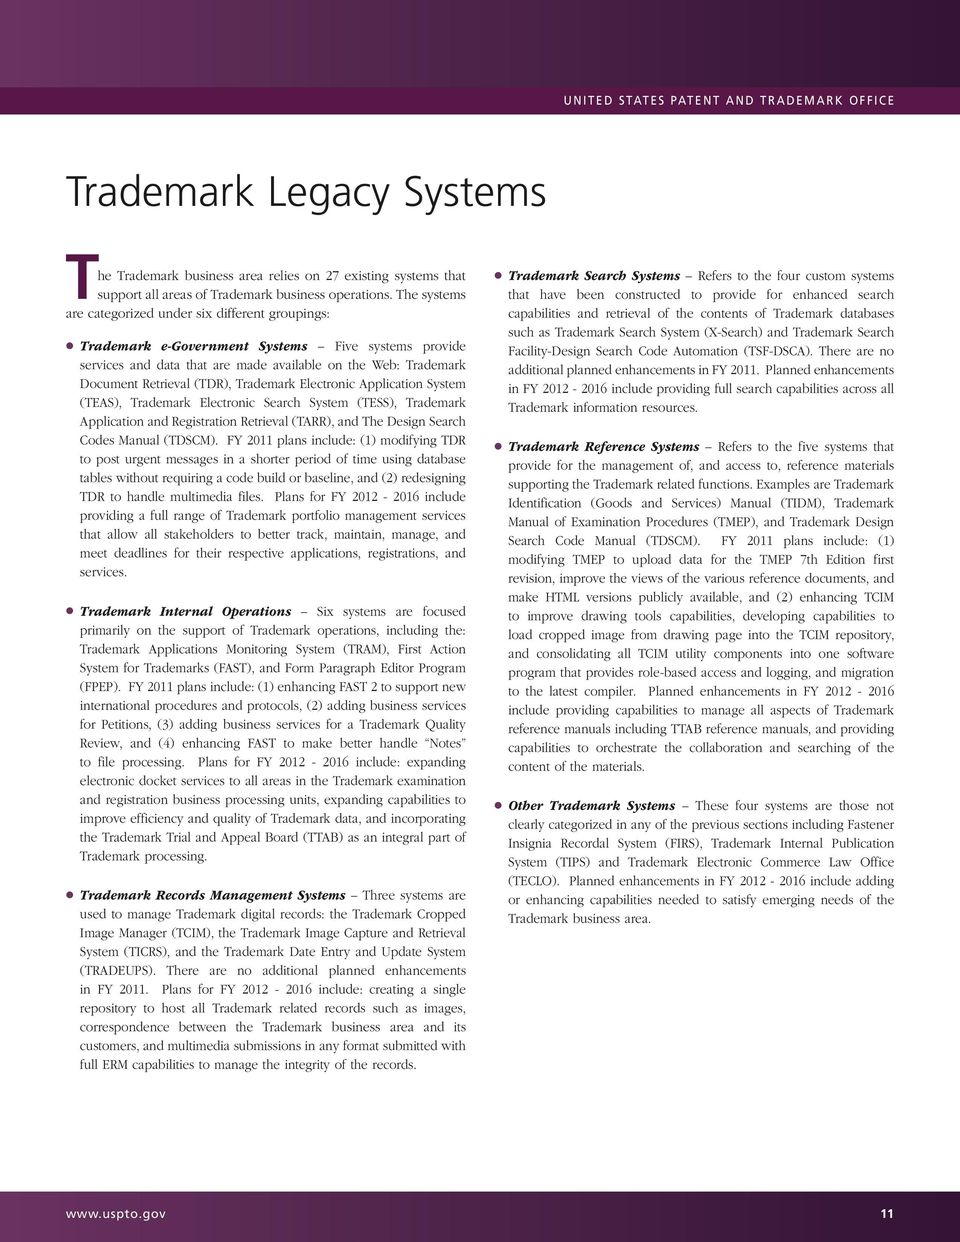 (TDR), Trademark Electronic Application System (TEAS), Trademark Electronic Search System (TESS), Trademark Application and Registration Retrieval (TARR), and The Design Search Codes Manual (TDSCM).